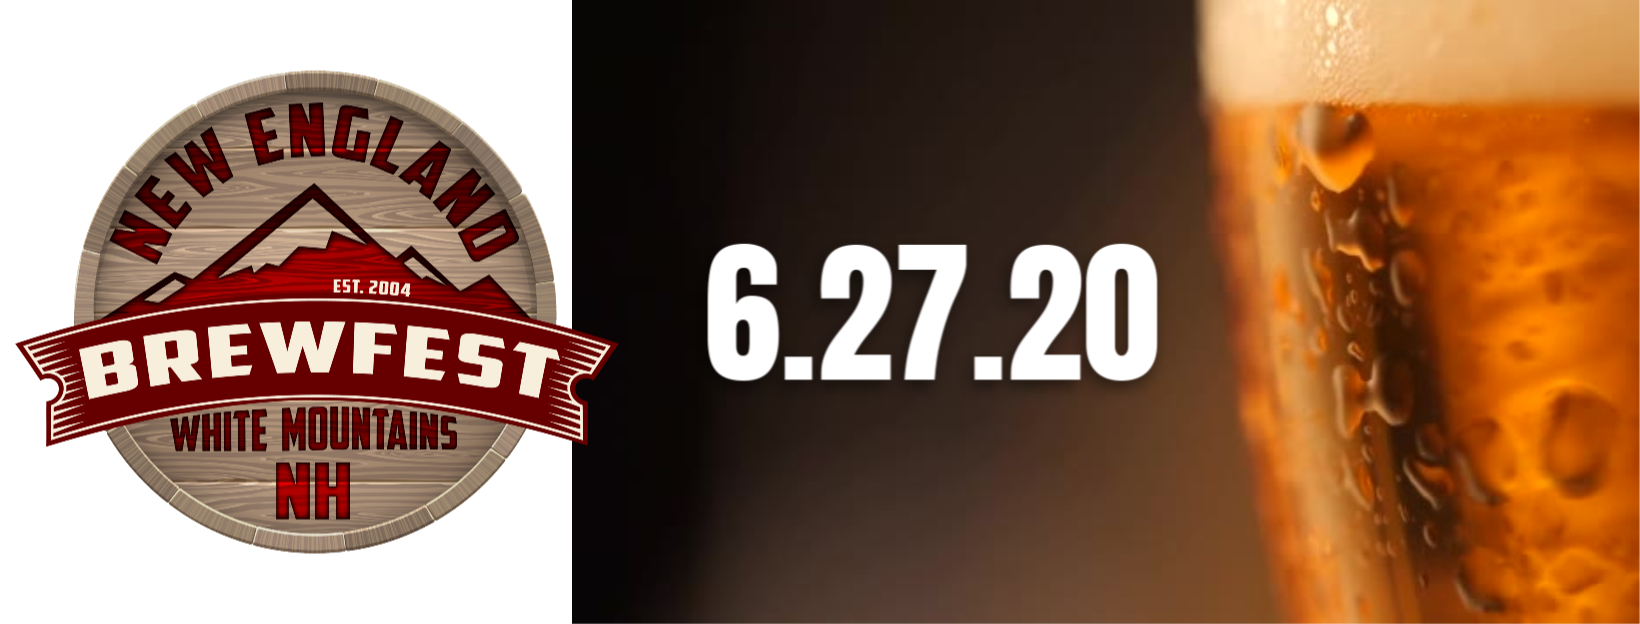 Tickets for 2020 New England Brewfest in Lincoln from BeerFests.com